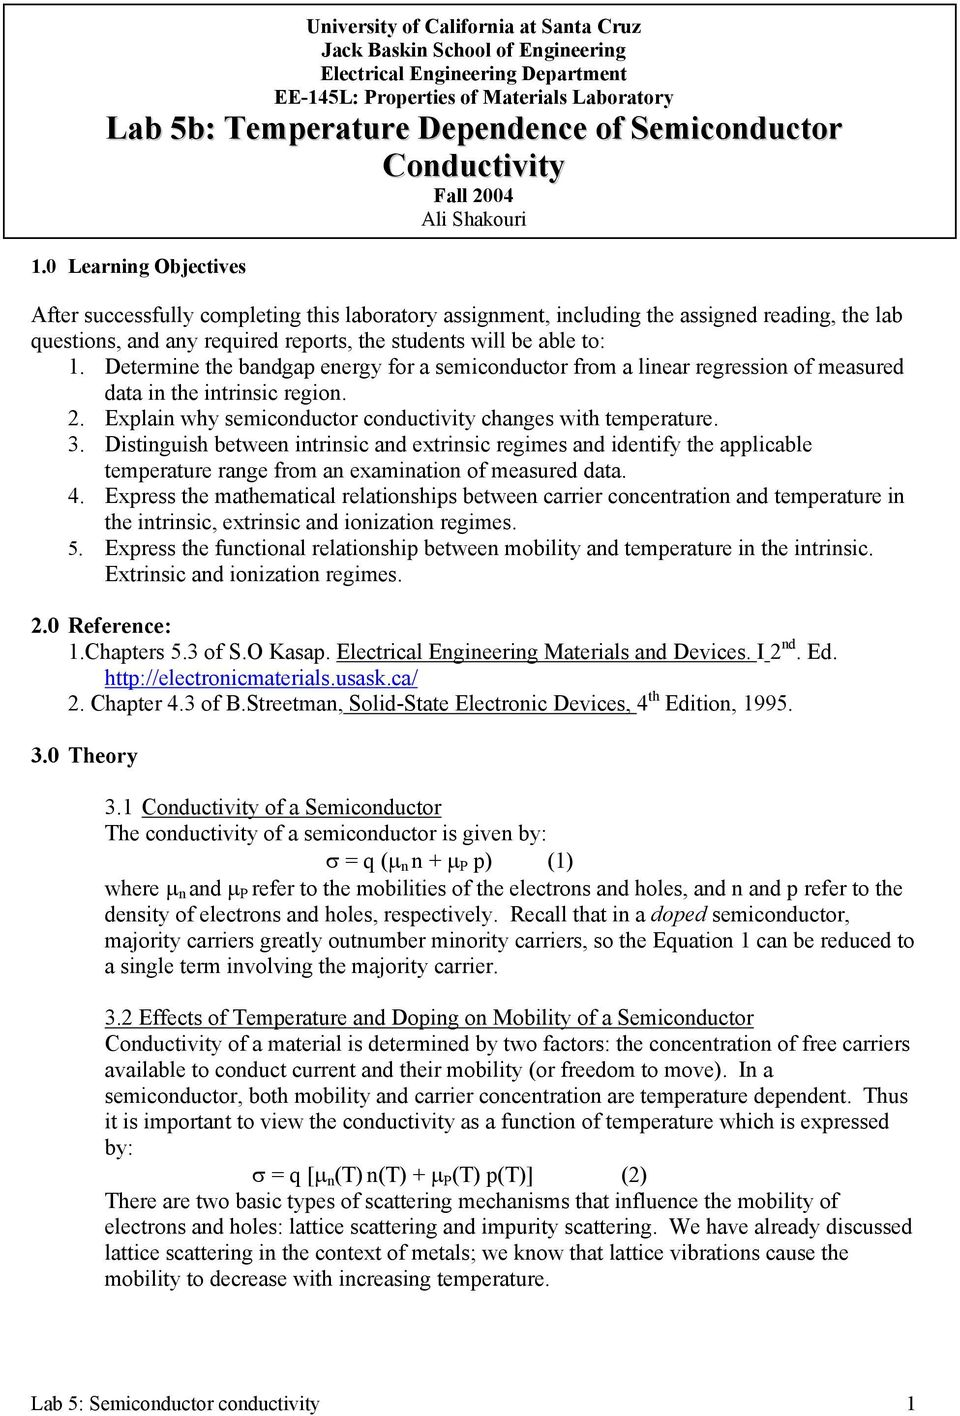 0 Learning Objectives After successfully completing this laboratory assignment, including the assigned reading, the lab questions, and any required reports, the students will be able to: 1.